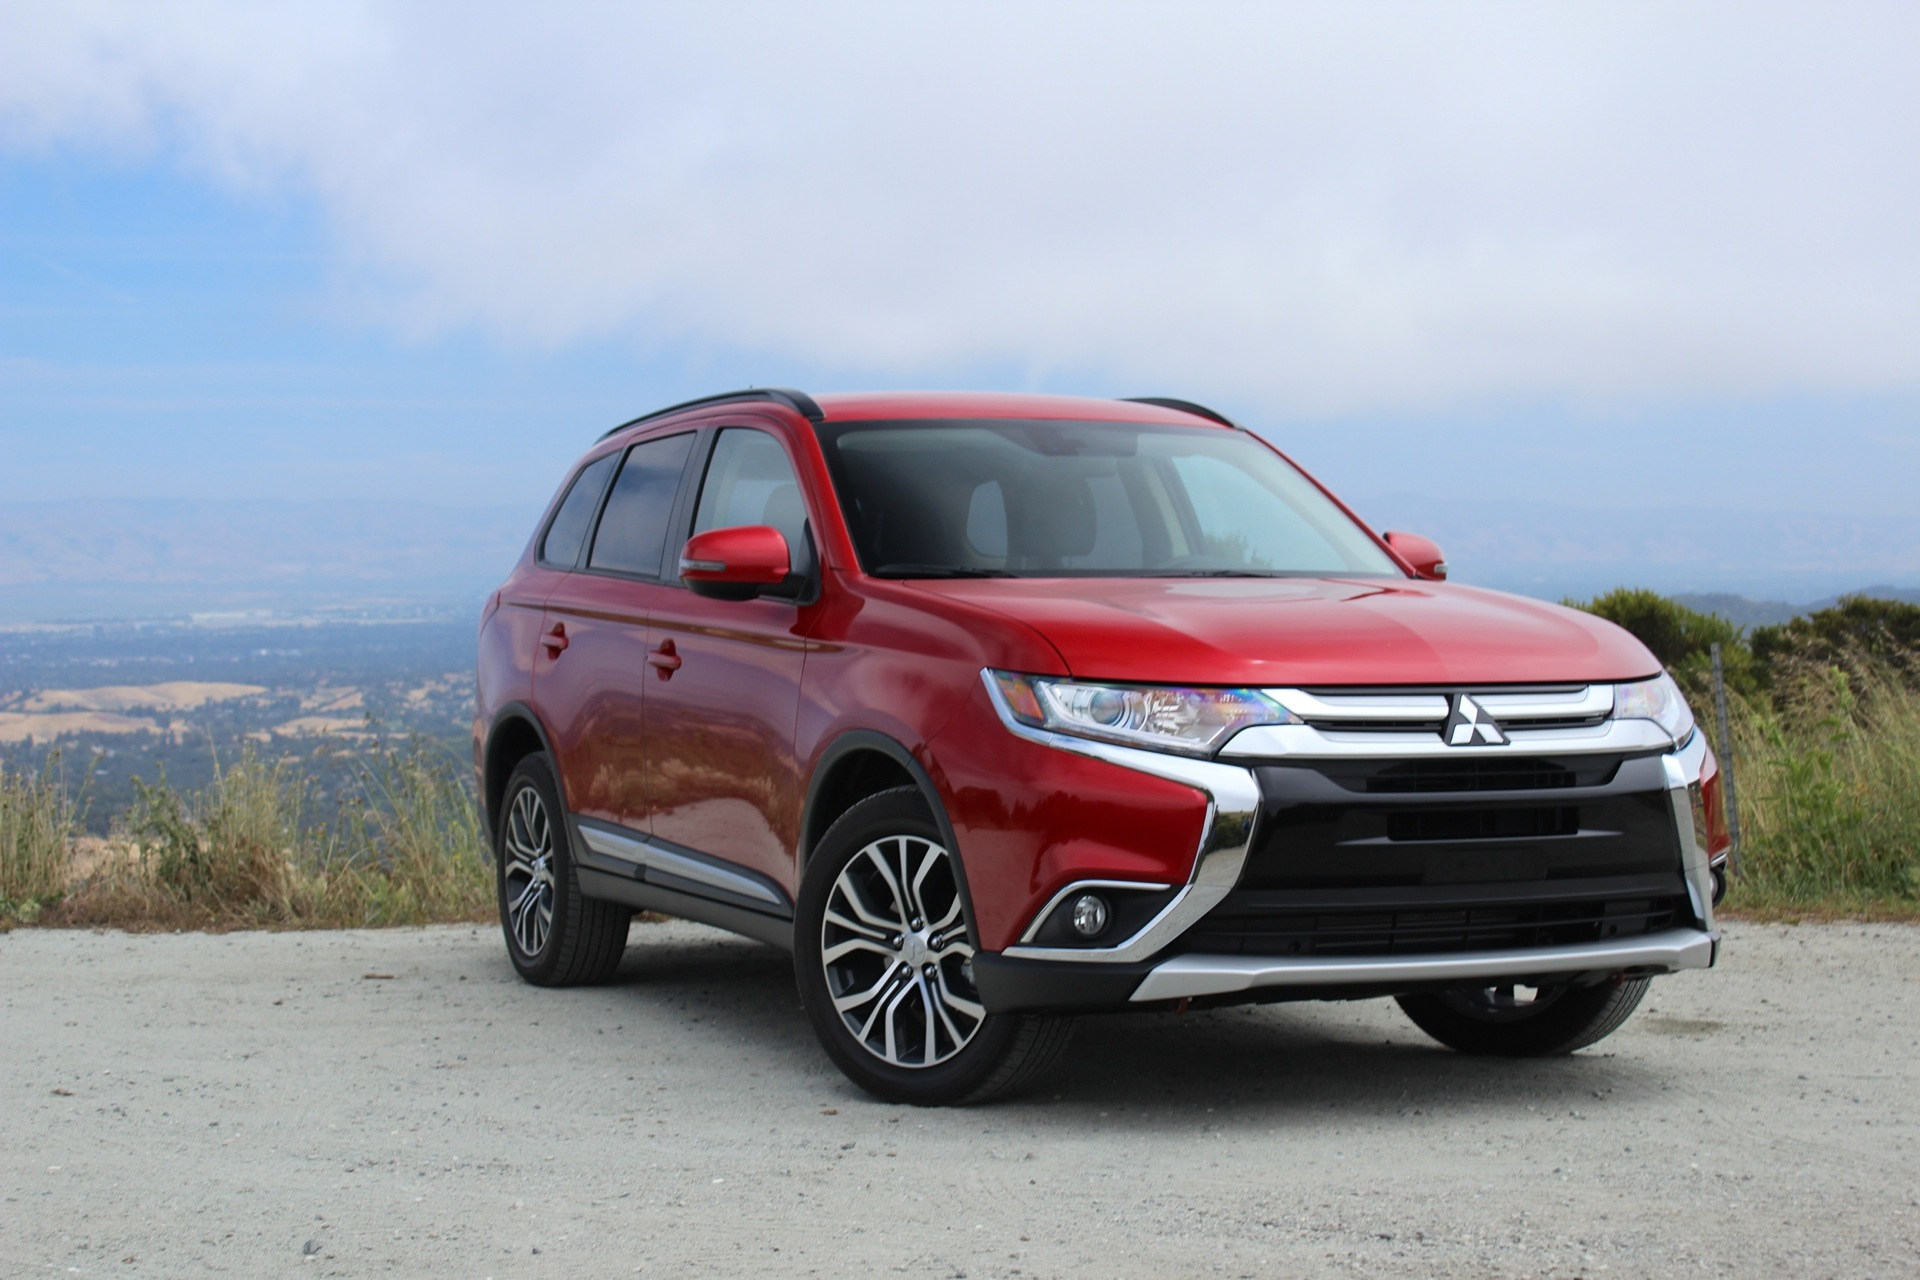 2016 Mitsubishi Outlander: First Drive